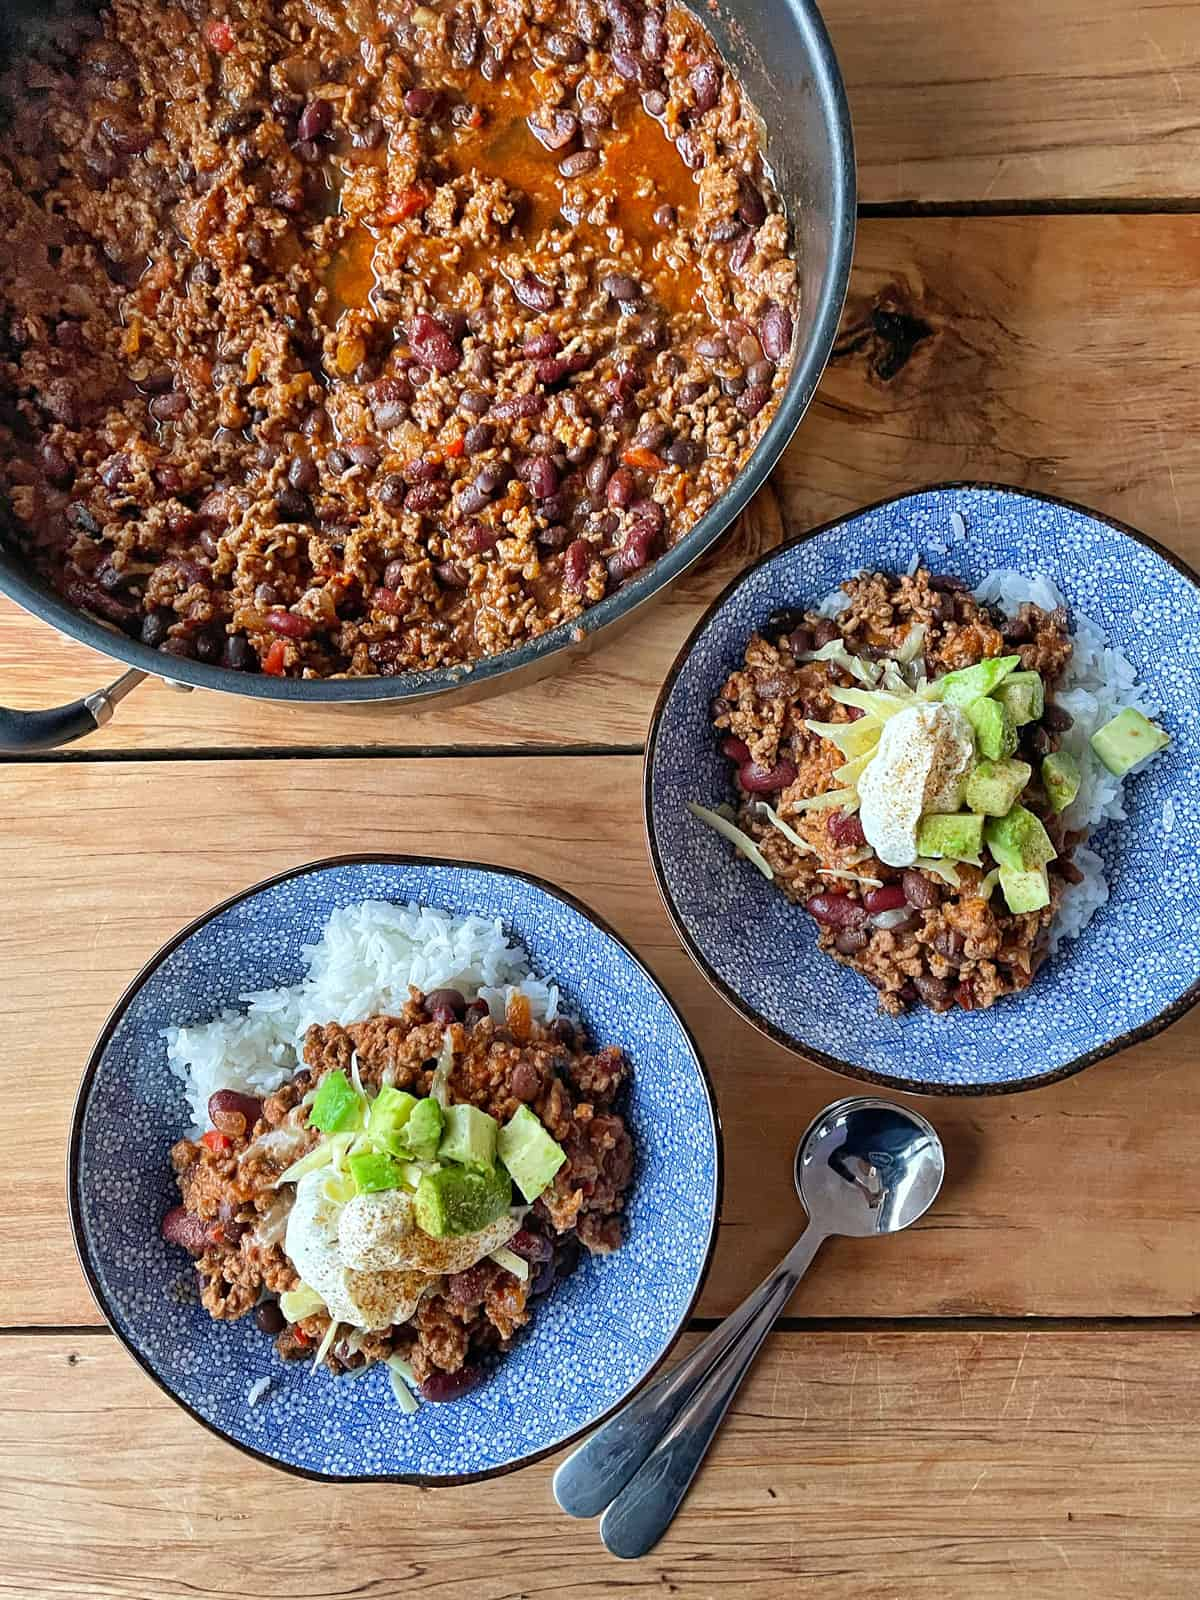 Chilli con carne in a large pot plus two small blue bowls of chilli on a wooden bench.